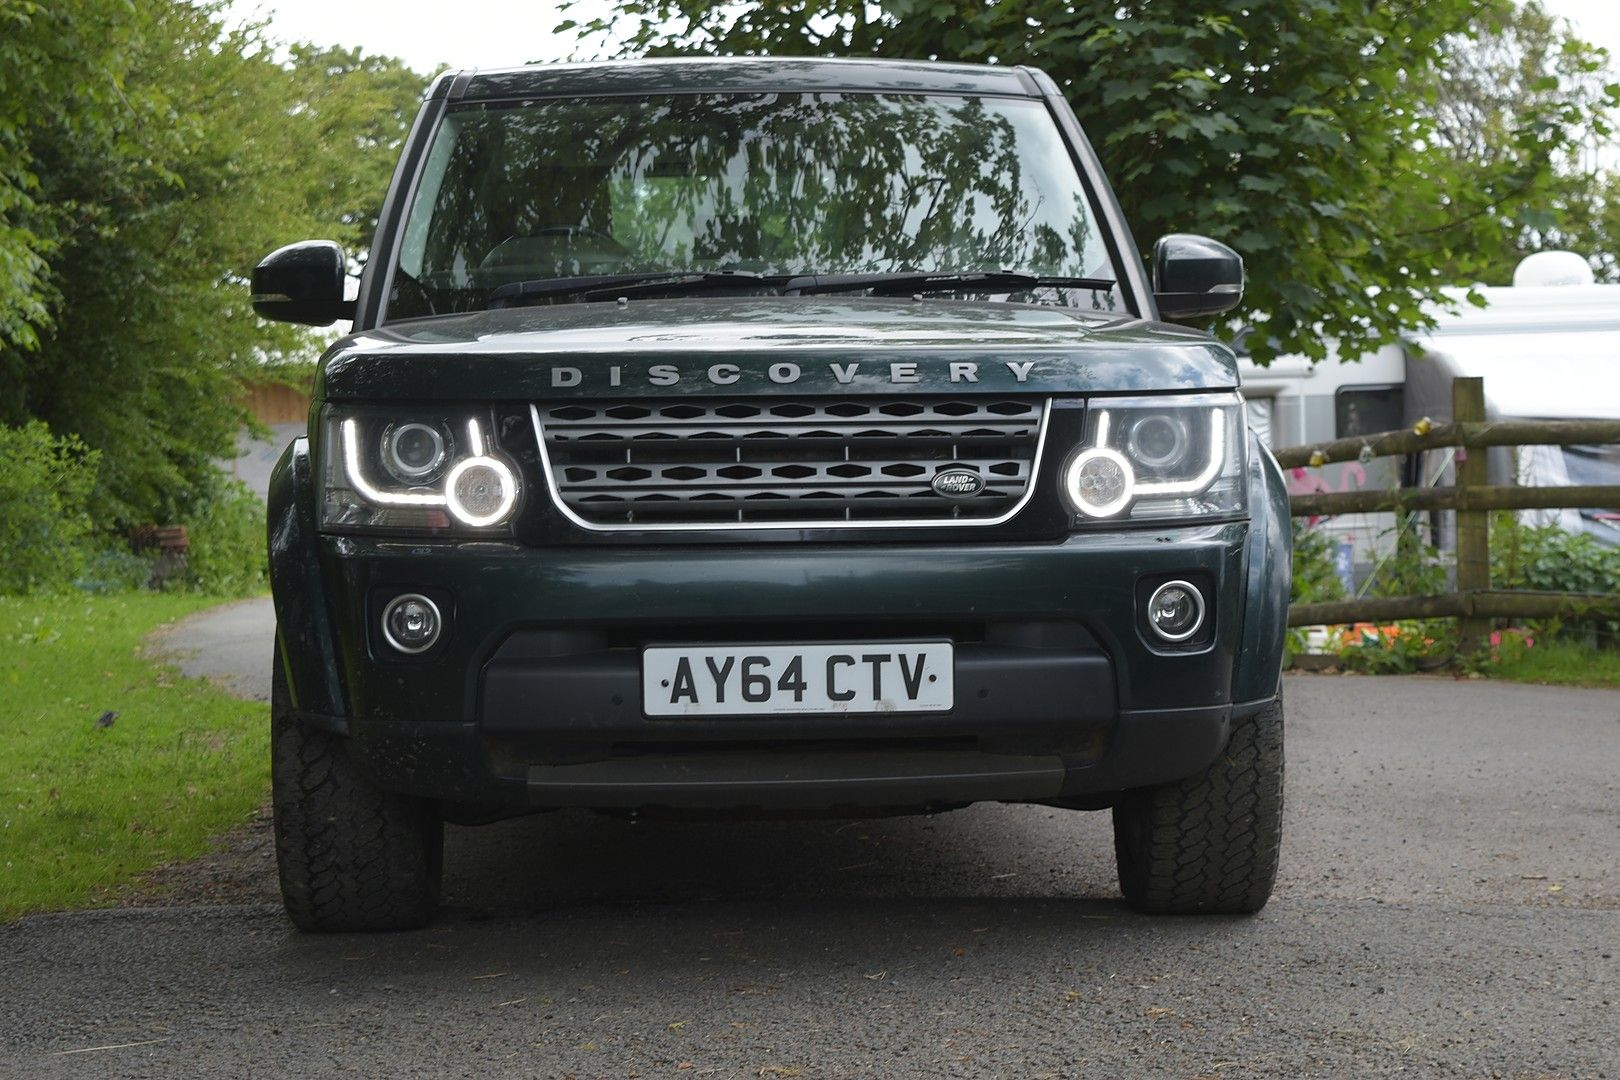 LAND ROVER Discovery 3.0 SDV6 GS - Thumbnail 2